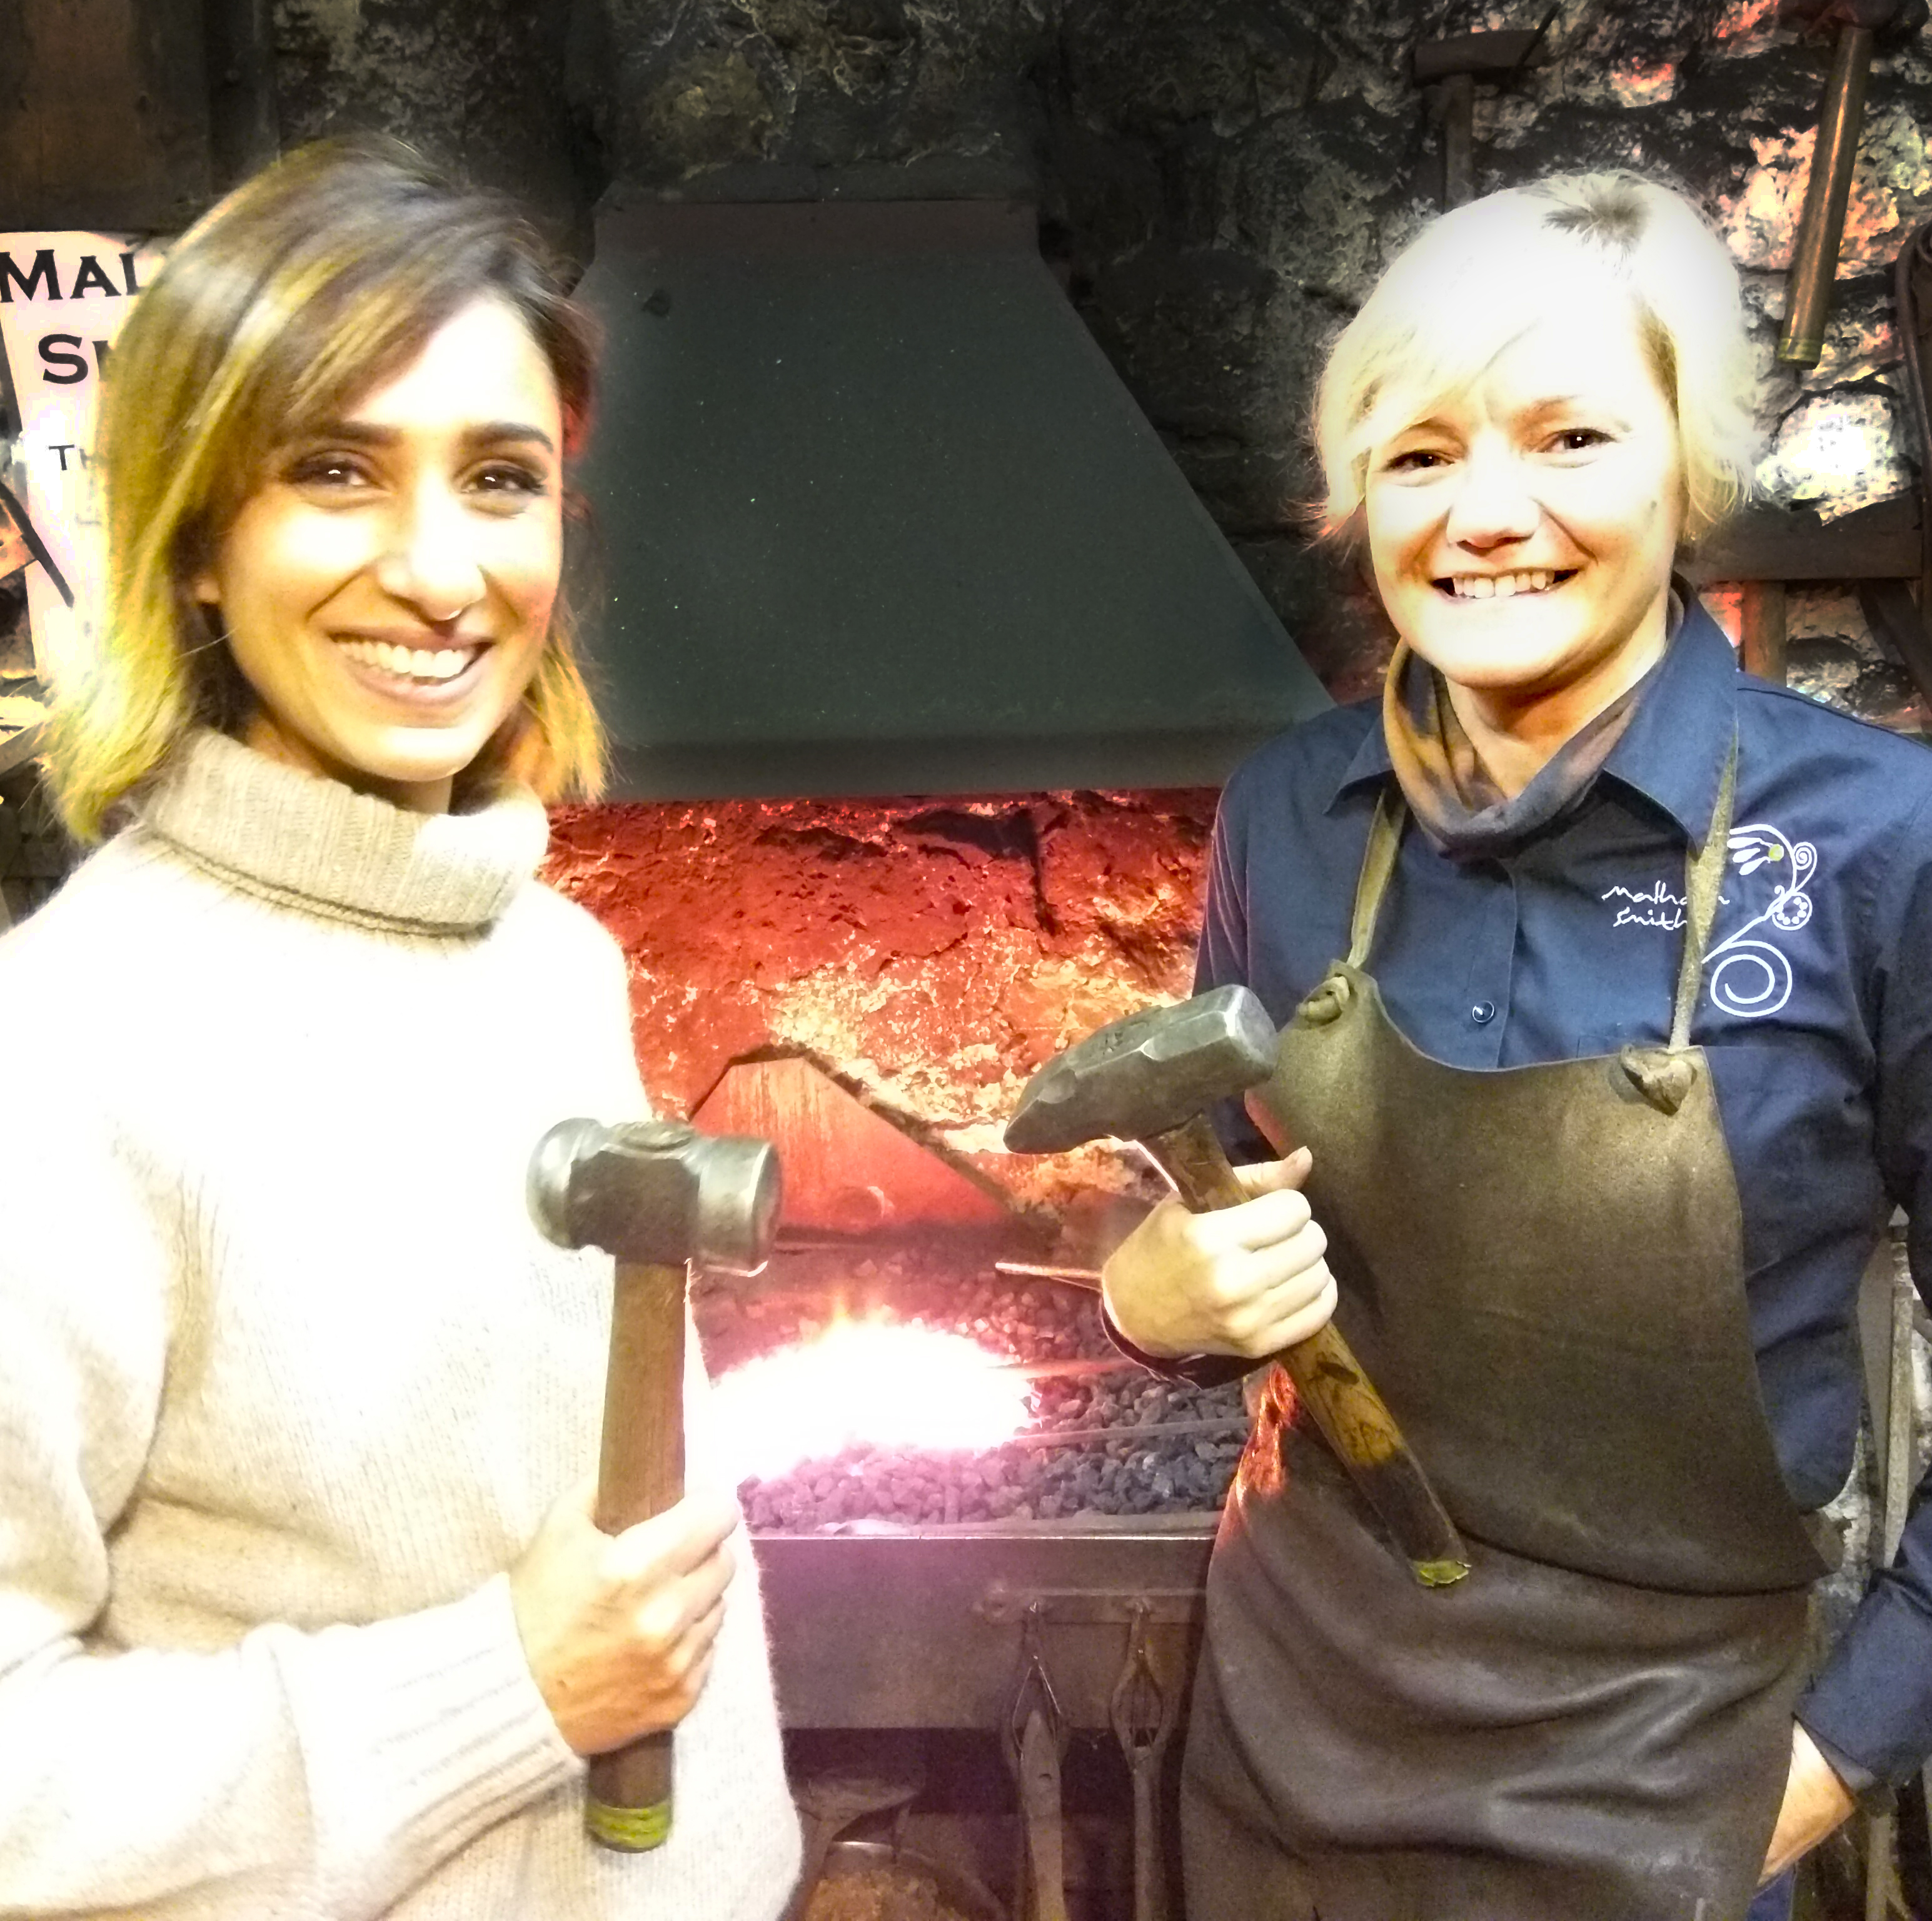 Countryfile Female Blacksmith Annabelle Bradley from the Malham Smithy